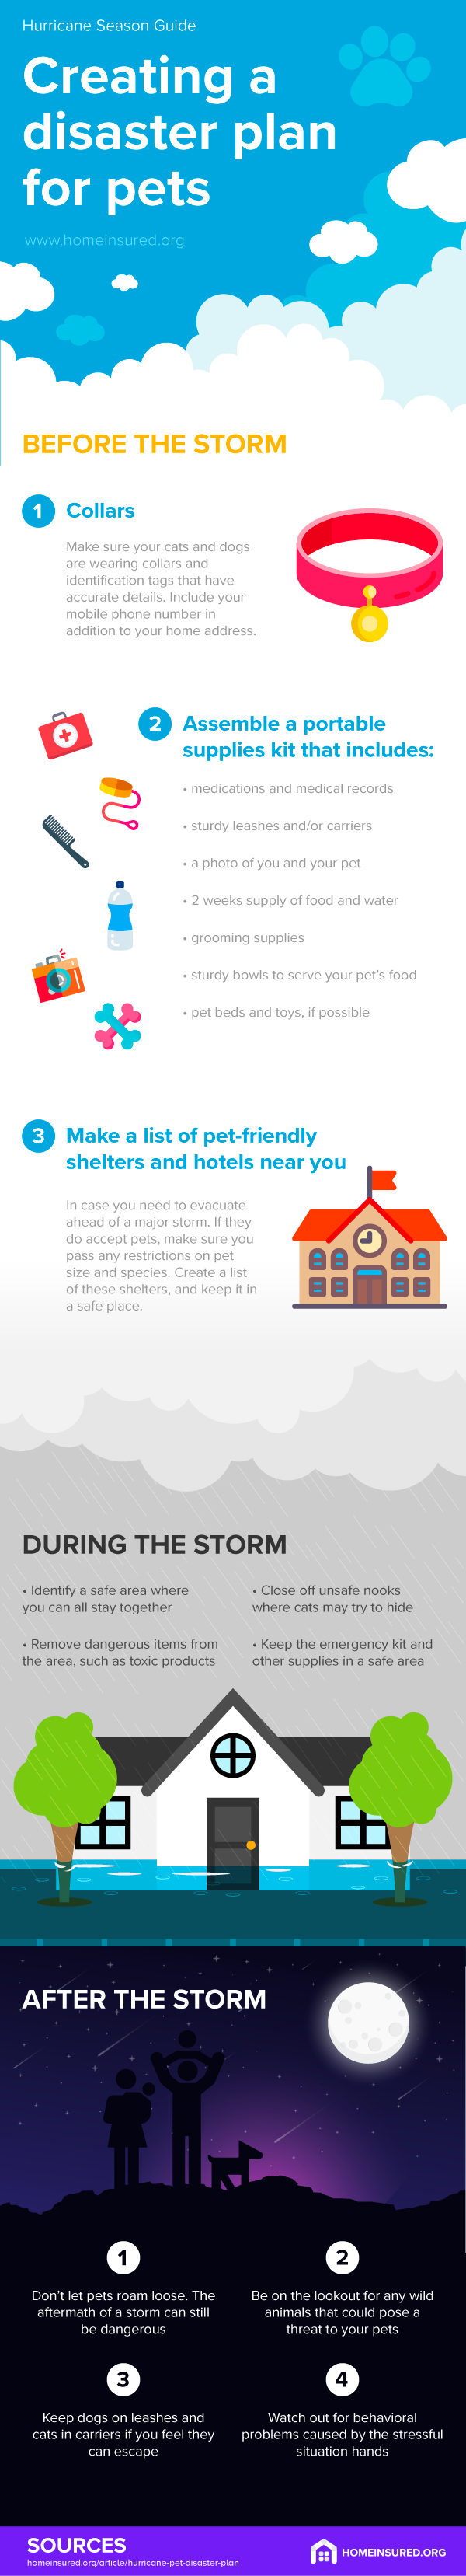 Creating a Disaster Plan for Pets